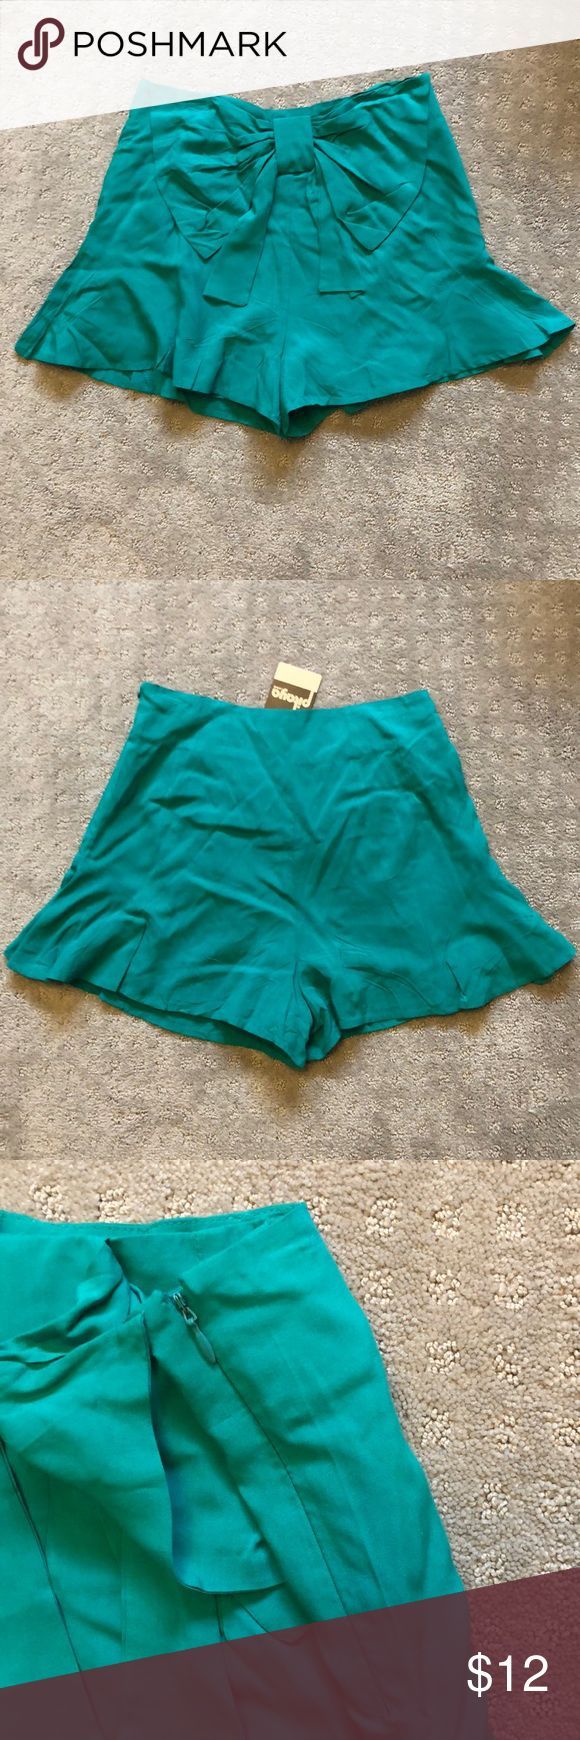 Teal shorts with a liner small Brand new with tags Shorts Skorts